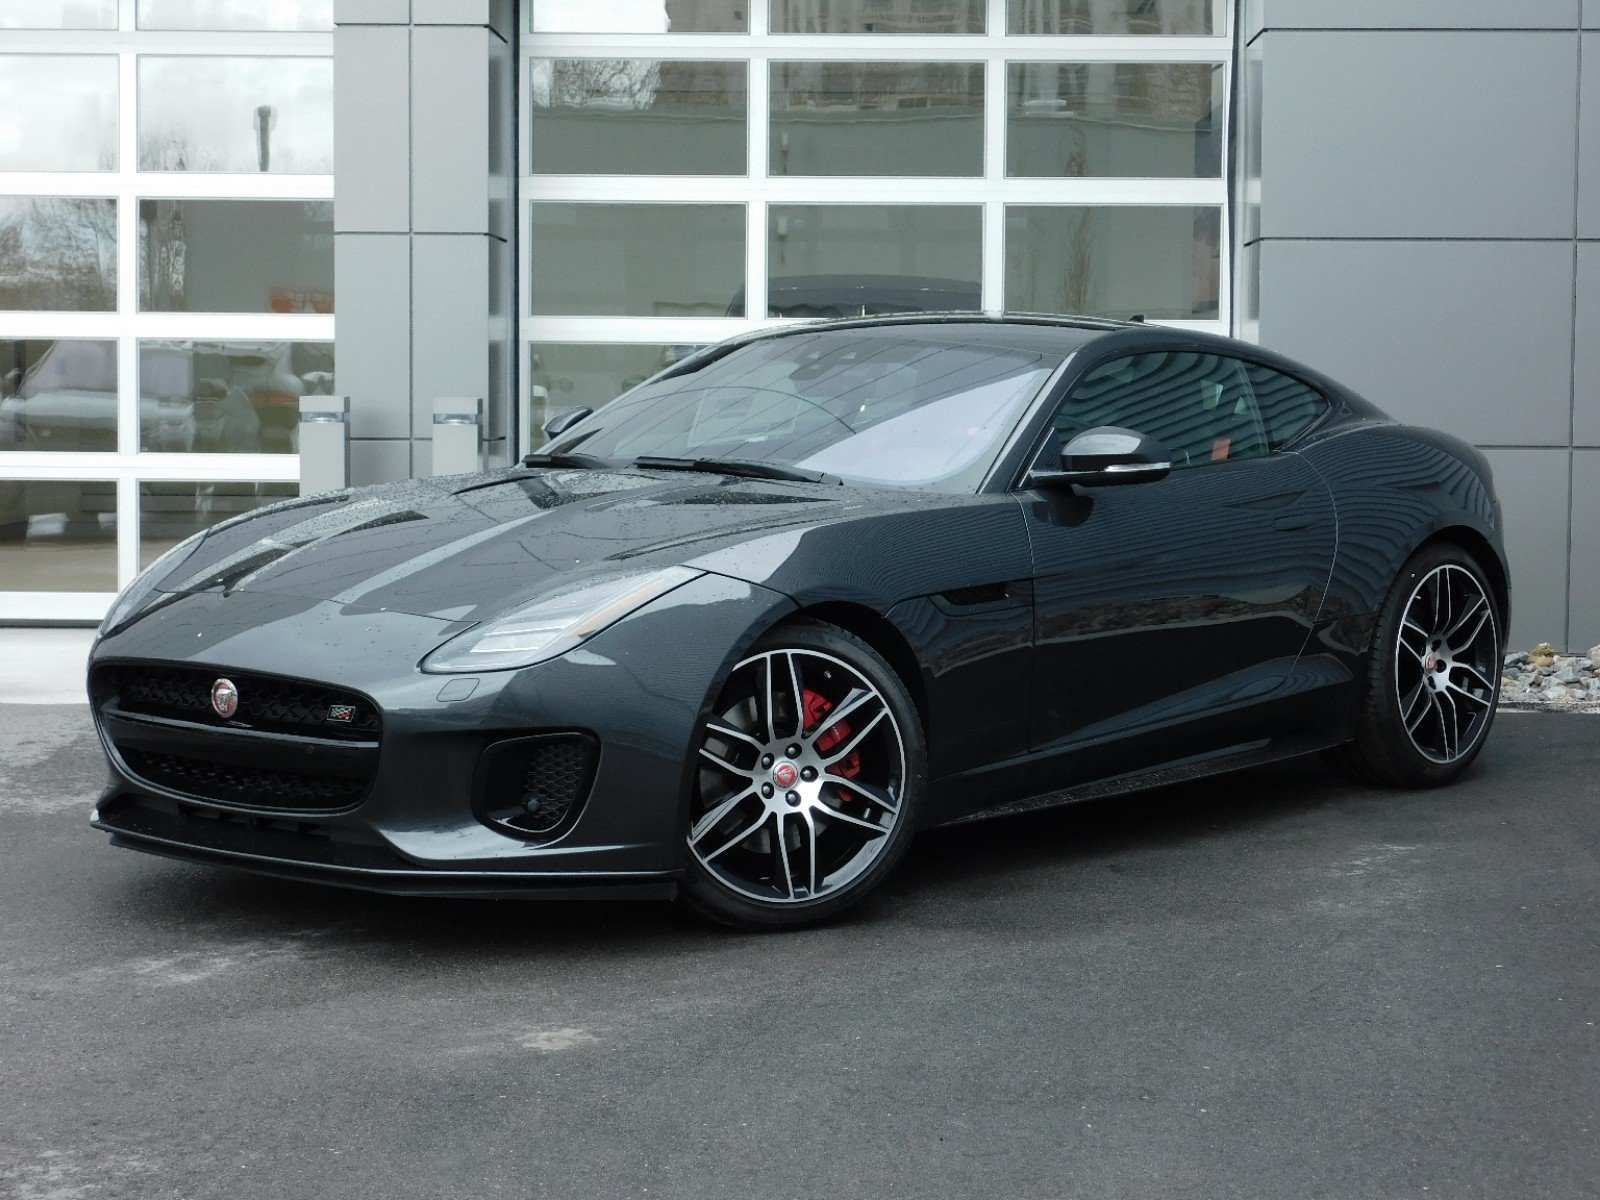 31 New Jaguar F Type 2020 Price for Jaguar F Type 2020